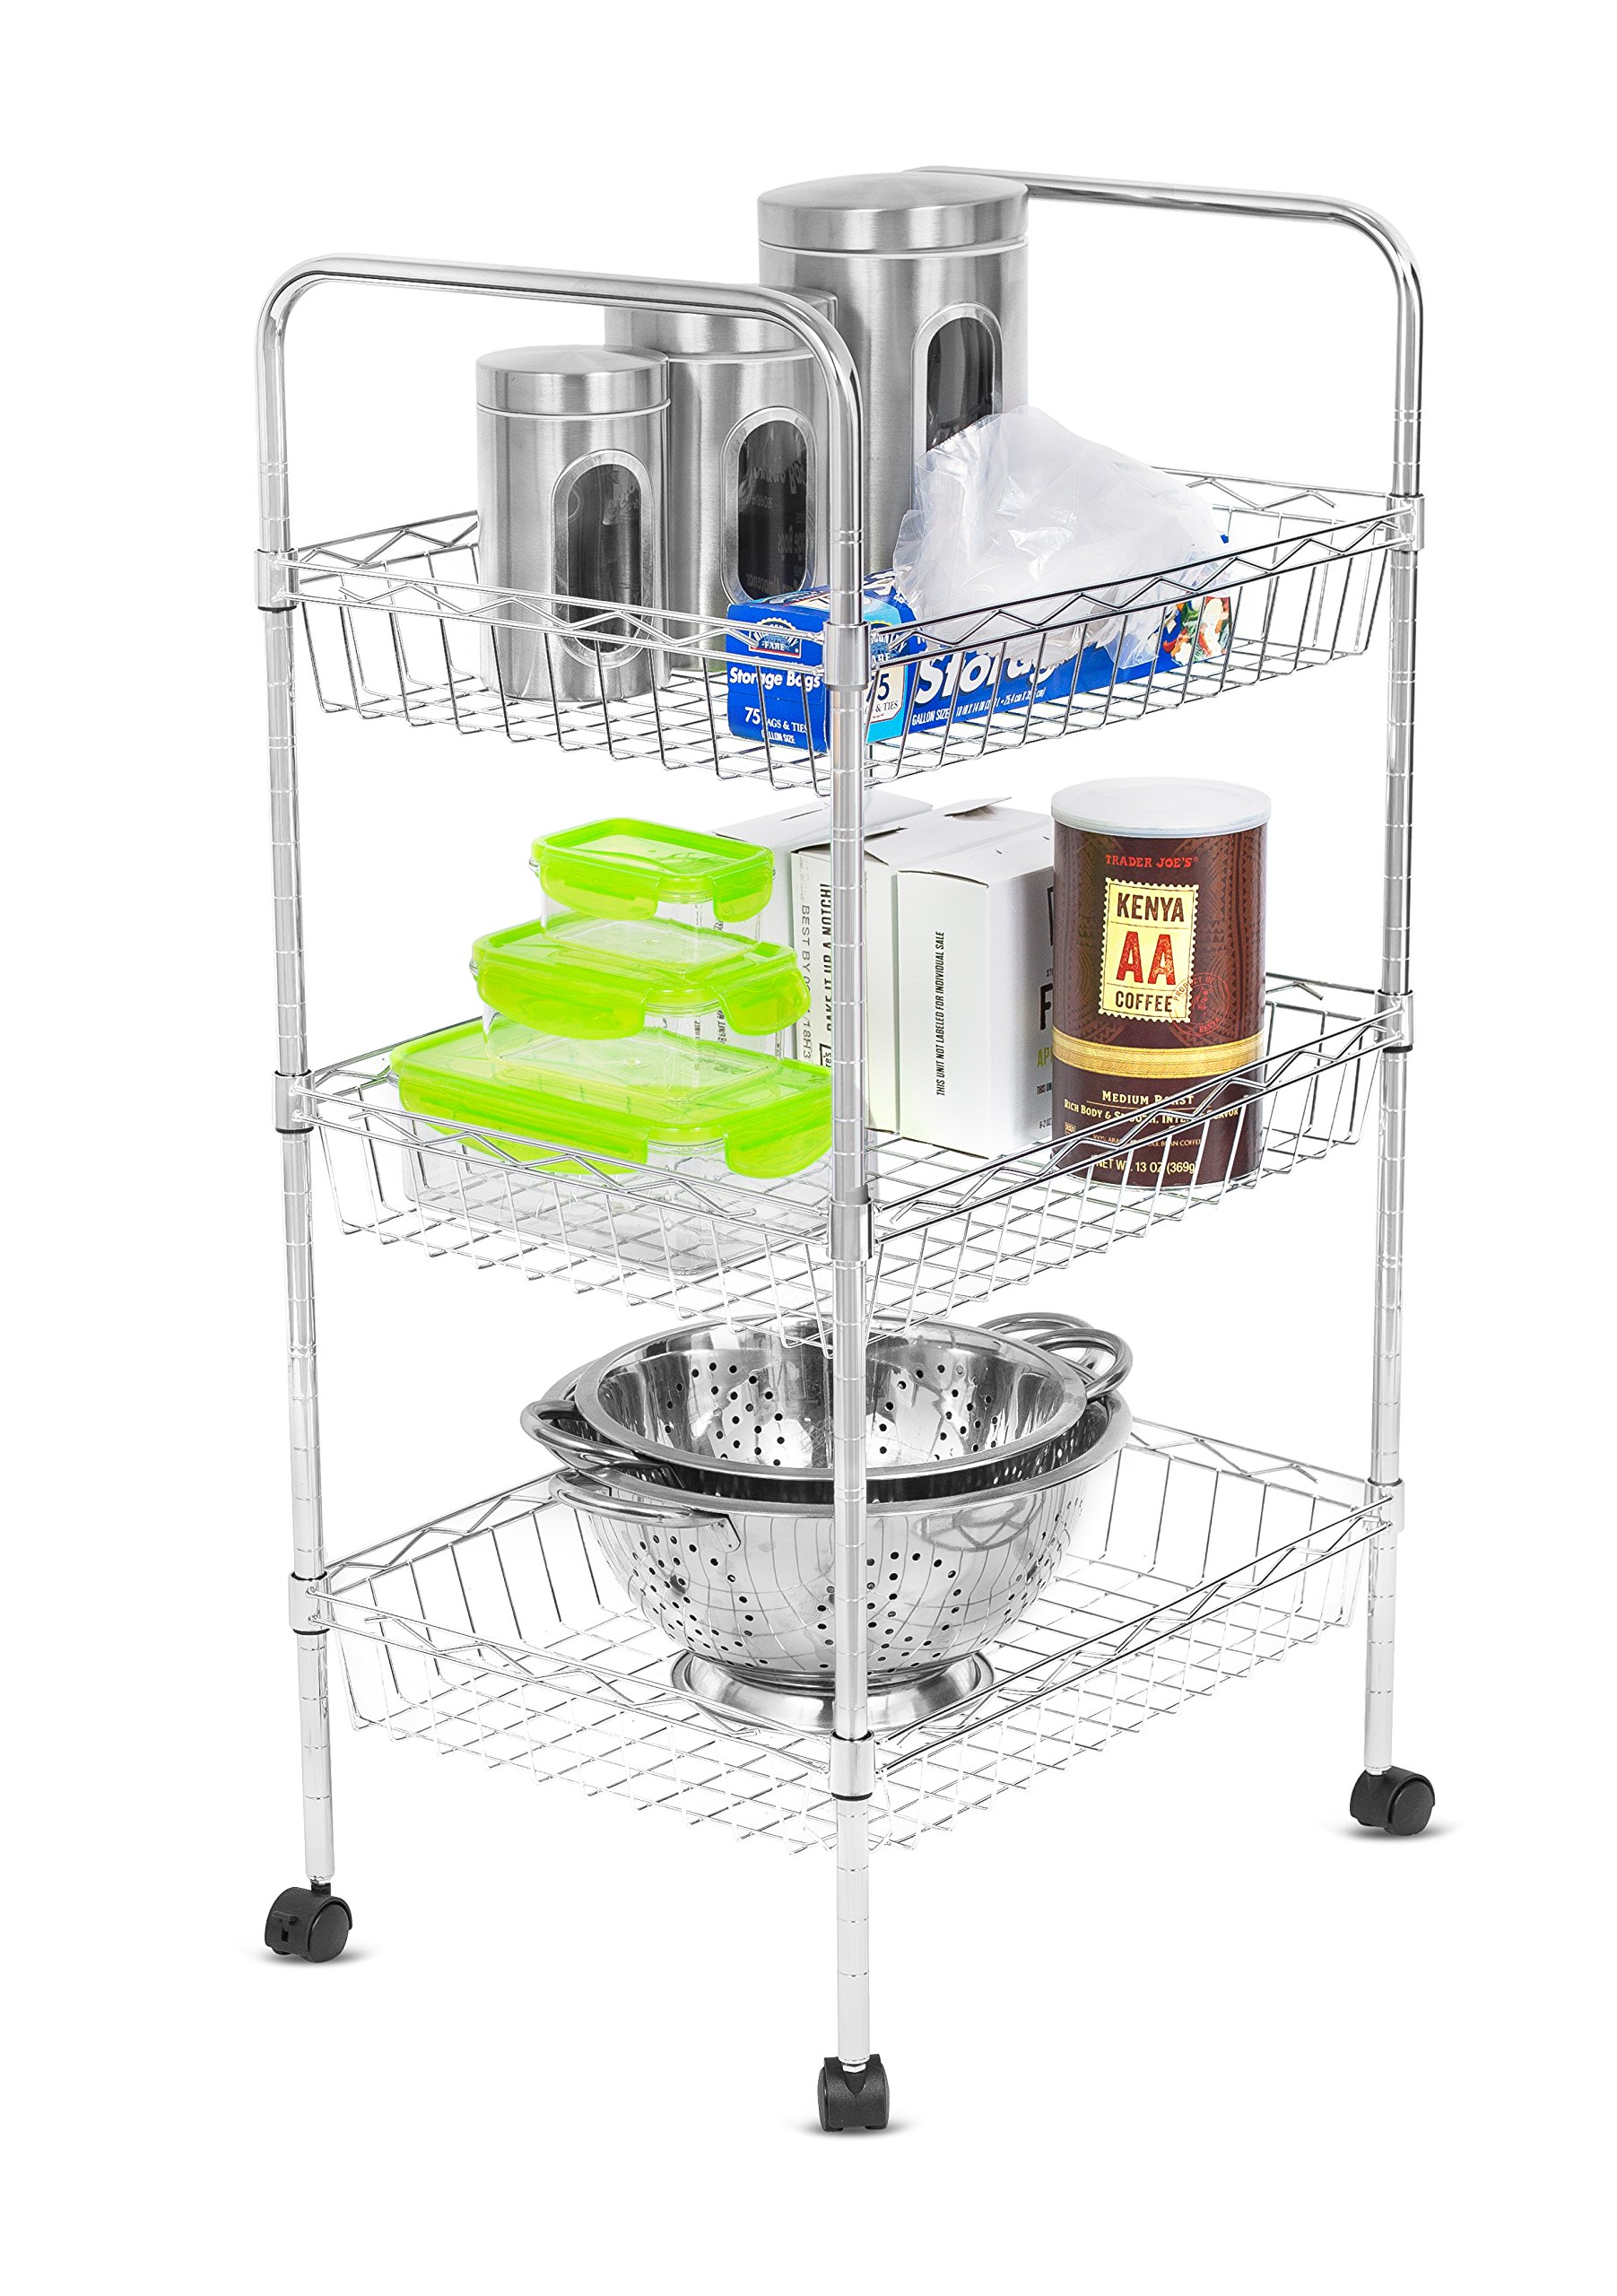 Internet's Best 3-Tier Kitchen Cart with Wire Baskets and Handles | Trolley with Locking Wheels | 3 Wire Baskets for Cooking Utensils or Food Pantry Storage | Laundry Room | Clothes | Bathroom